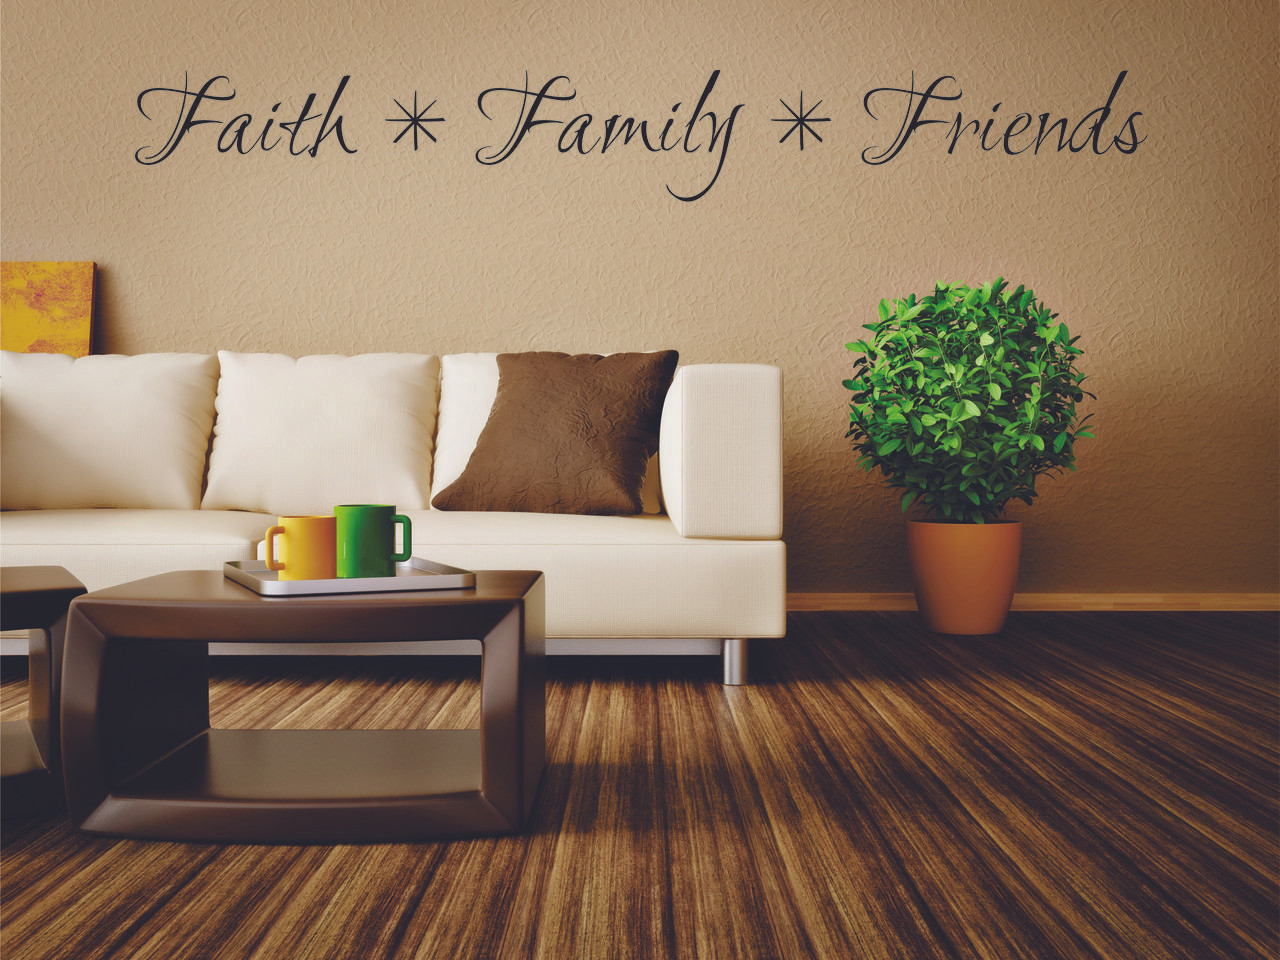 Faith Family Friends Wall Decal | Faith Family Friends Sign